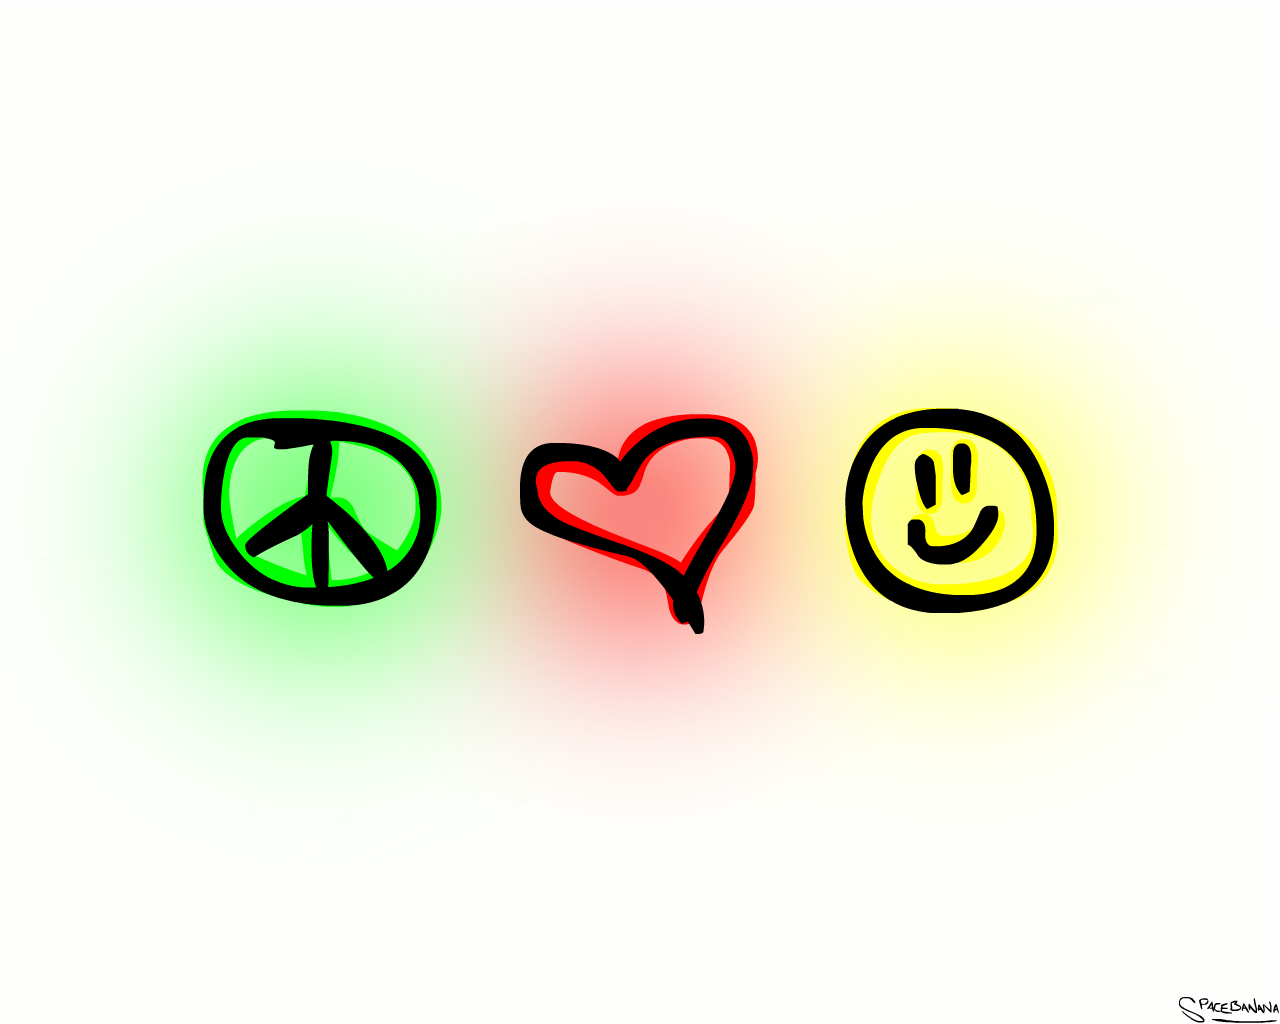 Peace loveand happiness images peace love and happiness hd peace loveand happiness images peace love and happiness hd wallpaper and background photos biocorpaavc Image collections